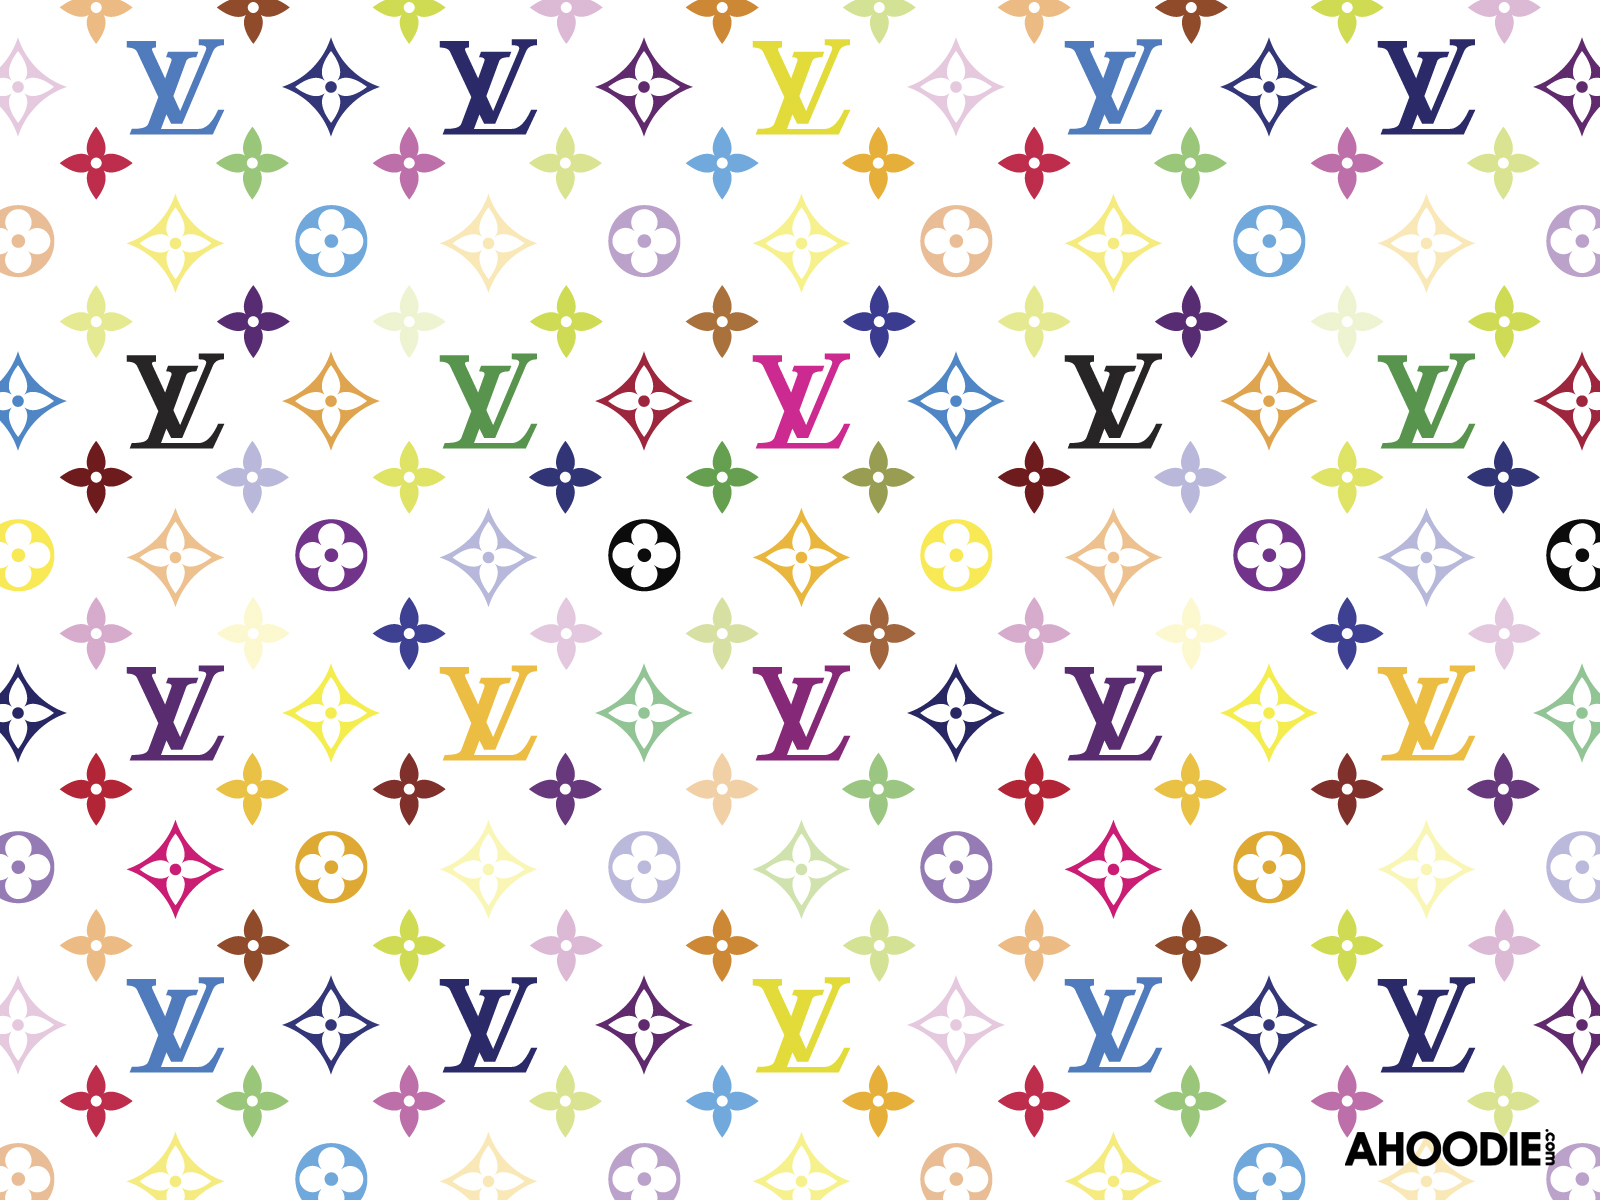 trololo blogg: Lv Wallpaper For Ipad